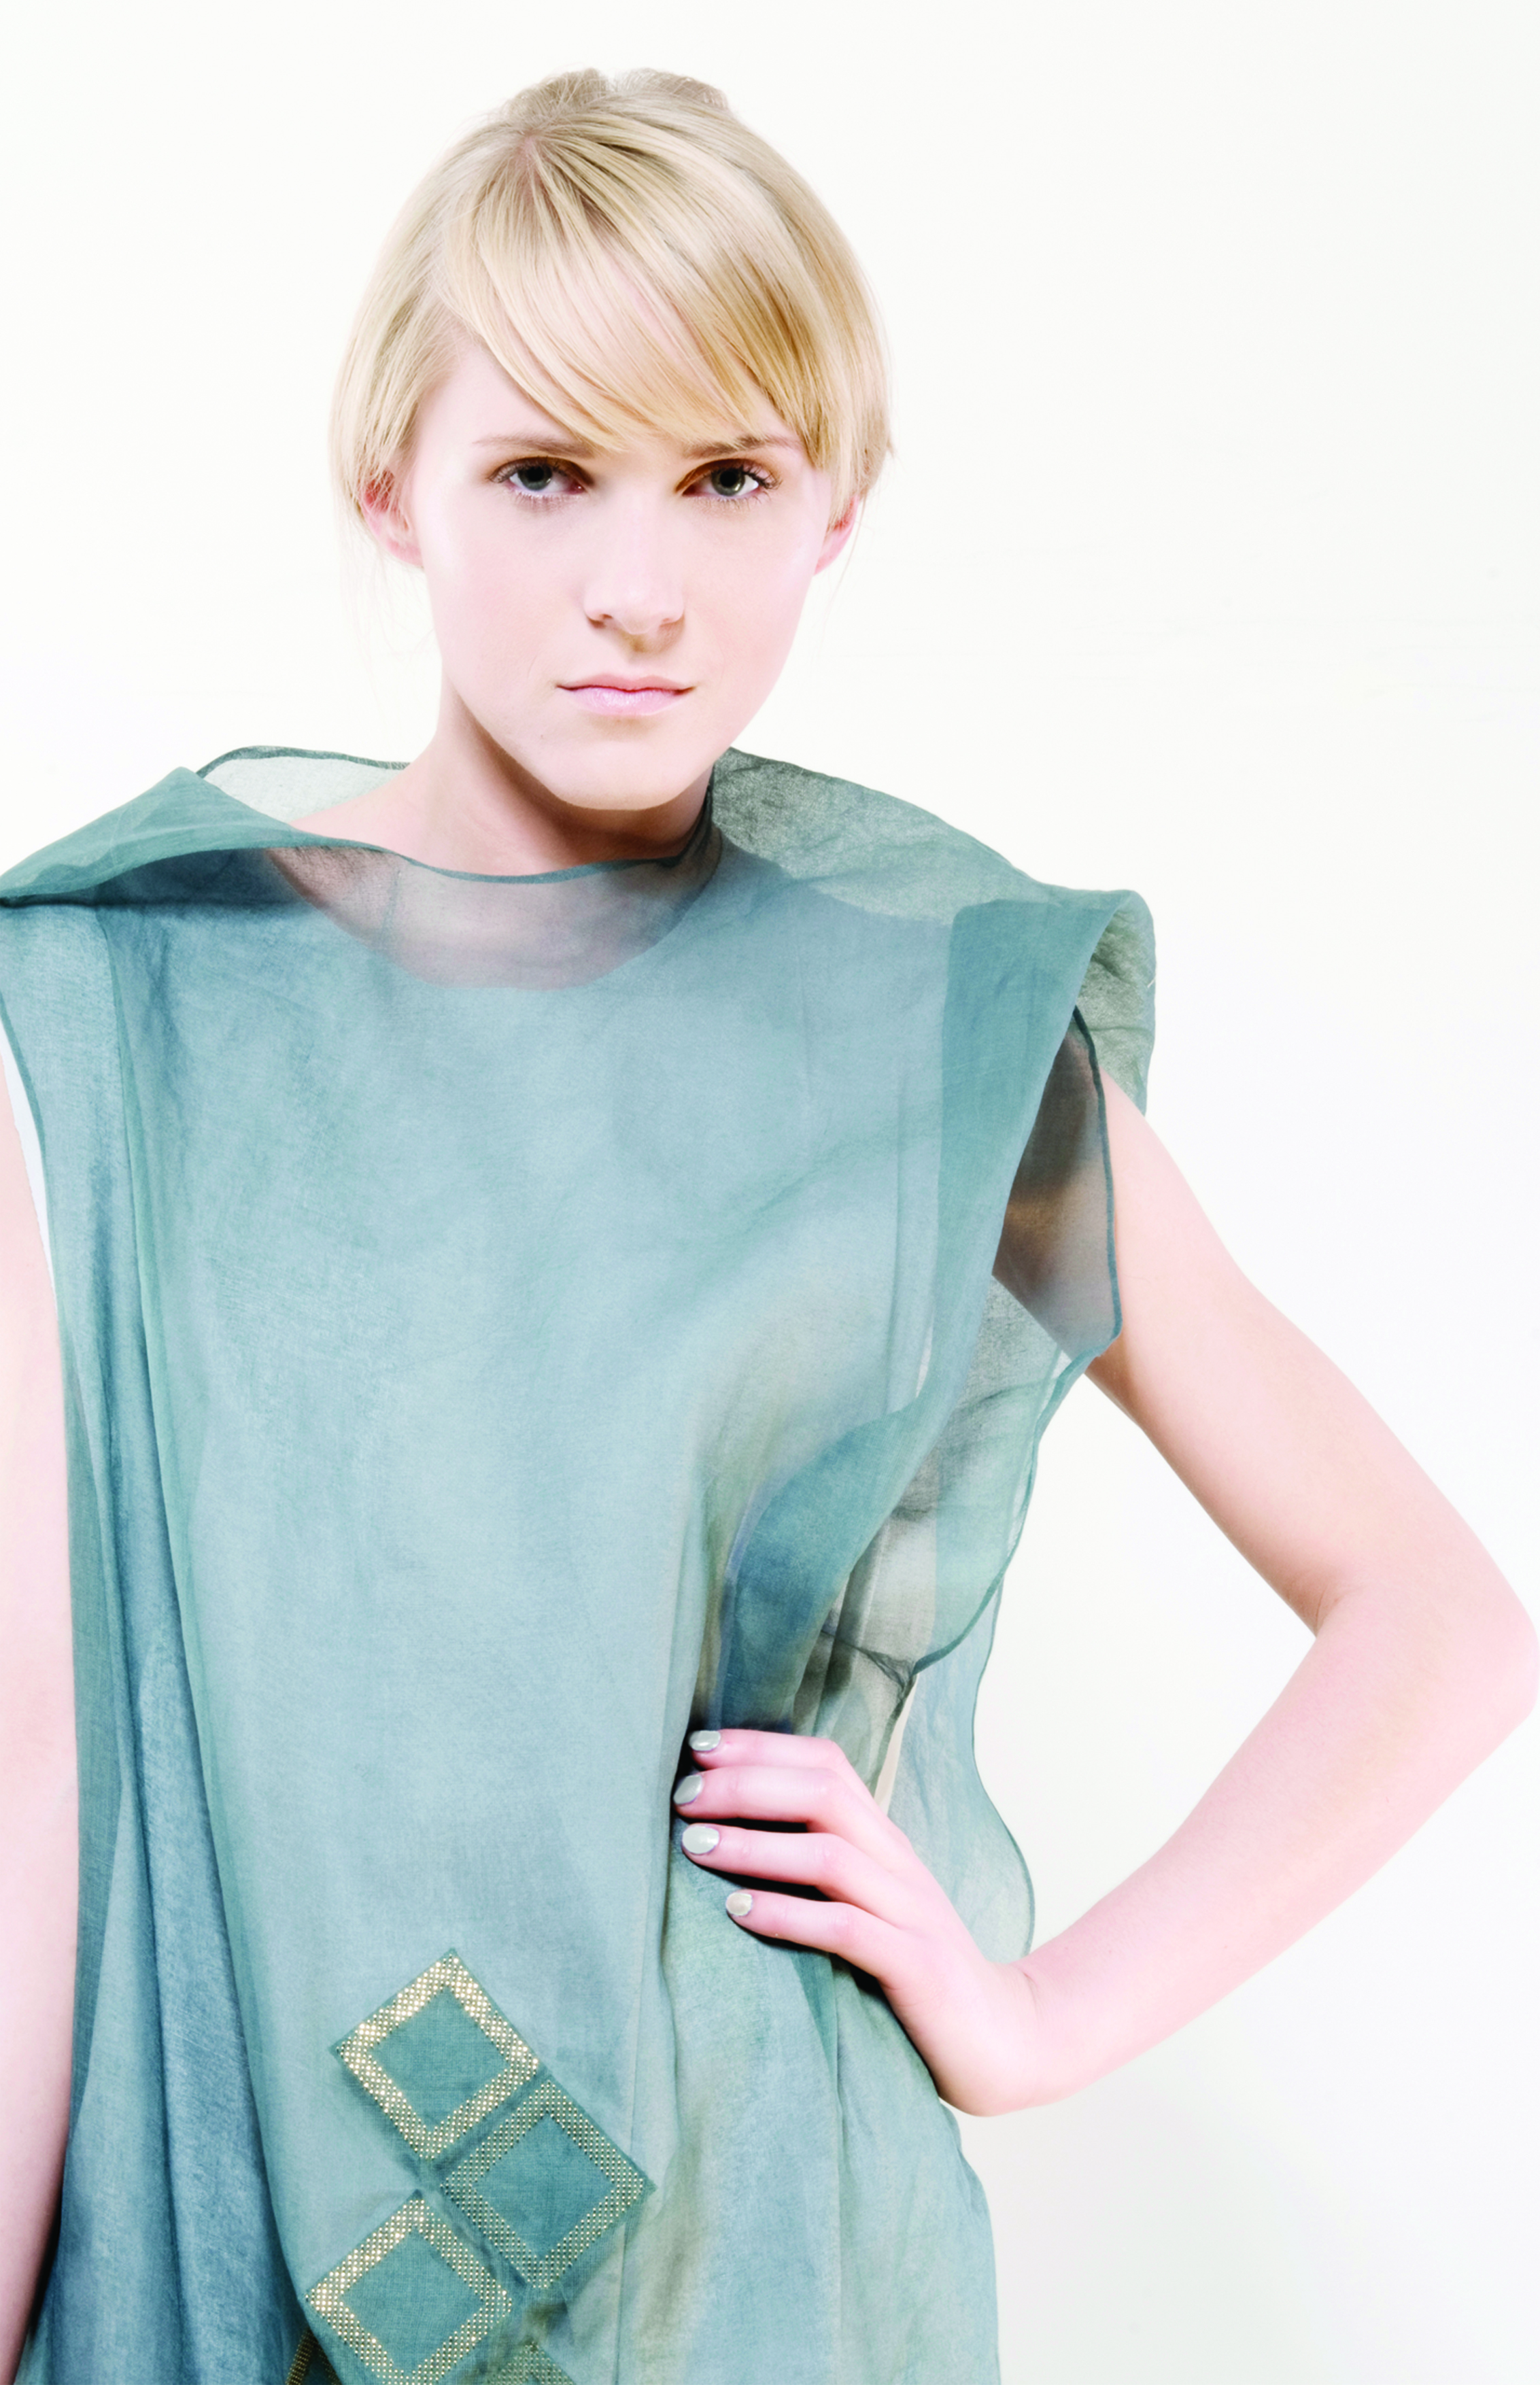 outfit-1a-outfit-1-Gravity-and-Levitation-Spring-Summer-Collection-Isabel-Wong-Green-Organdy-Gold-CPU.jpg